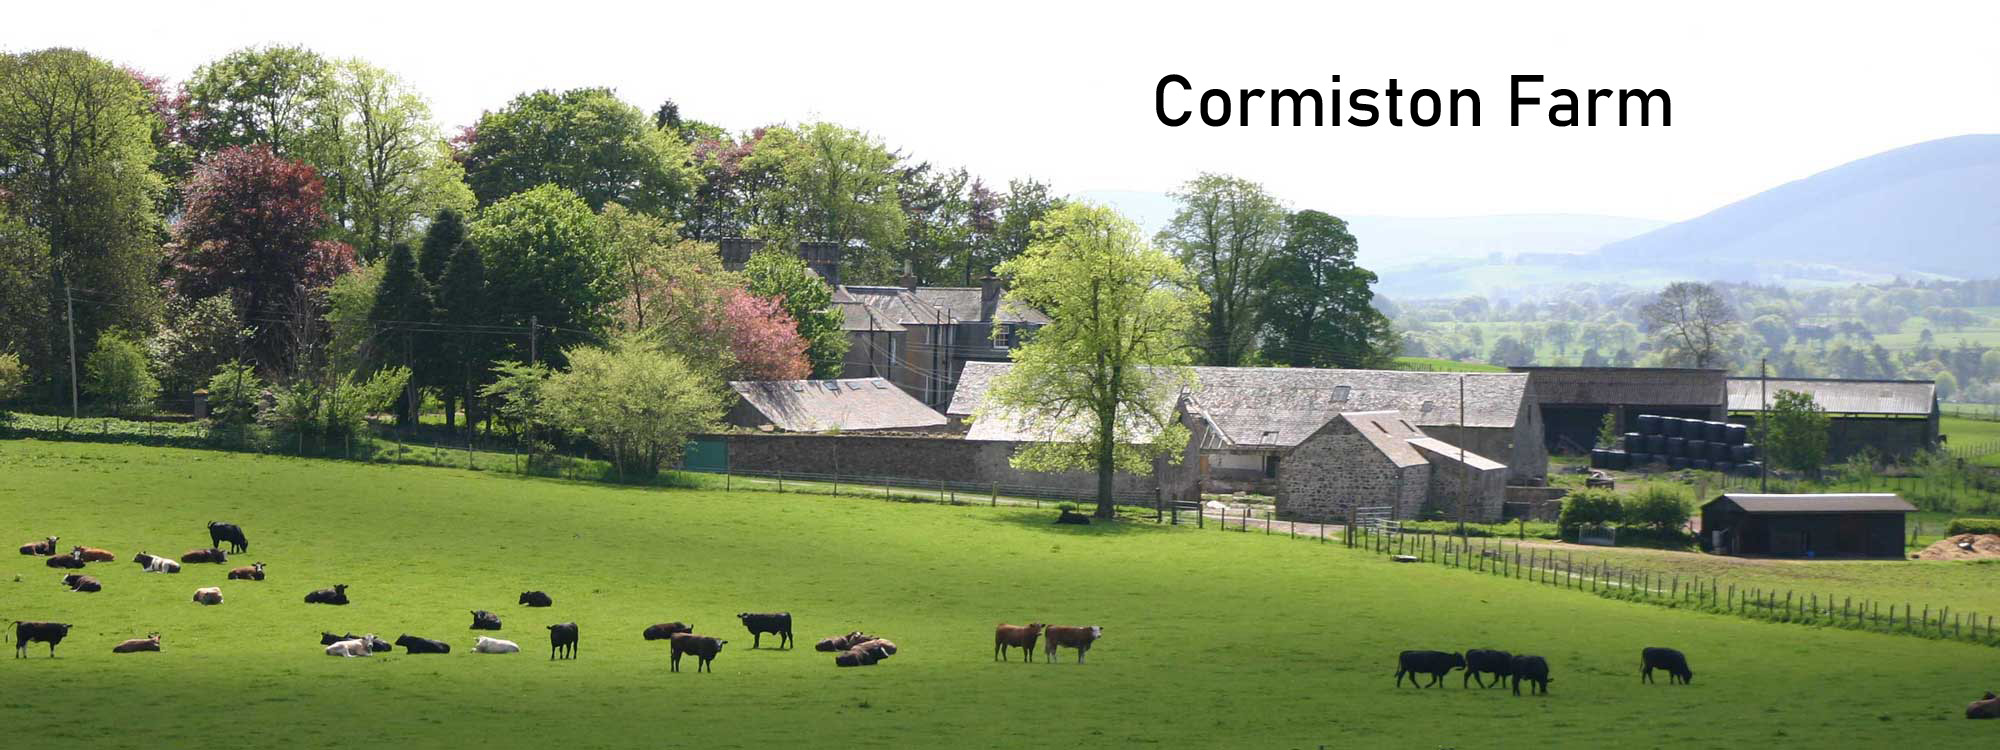 Cormiston Farm